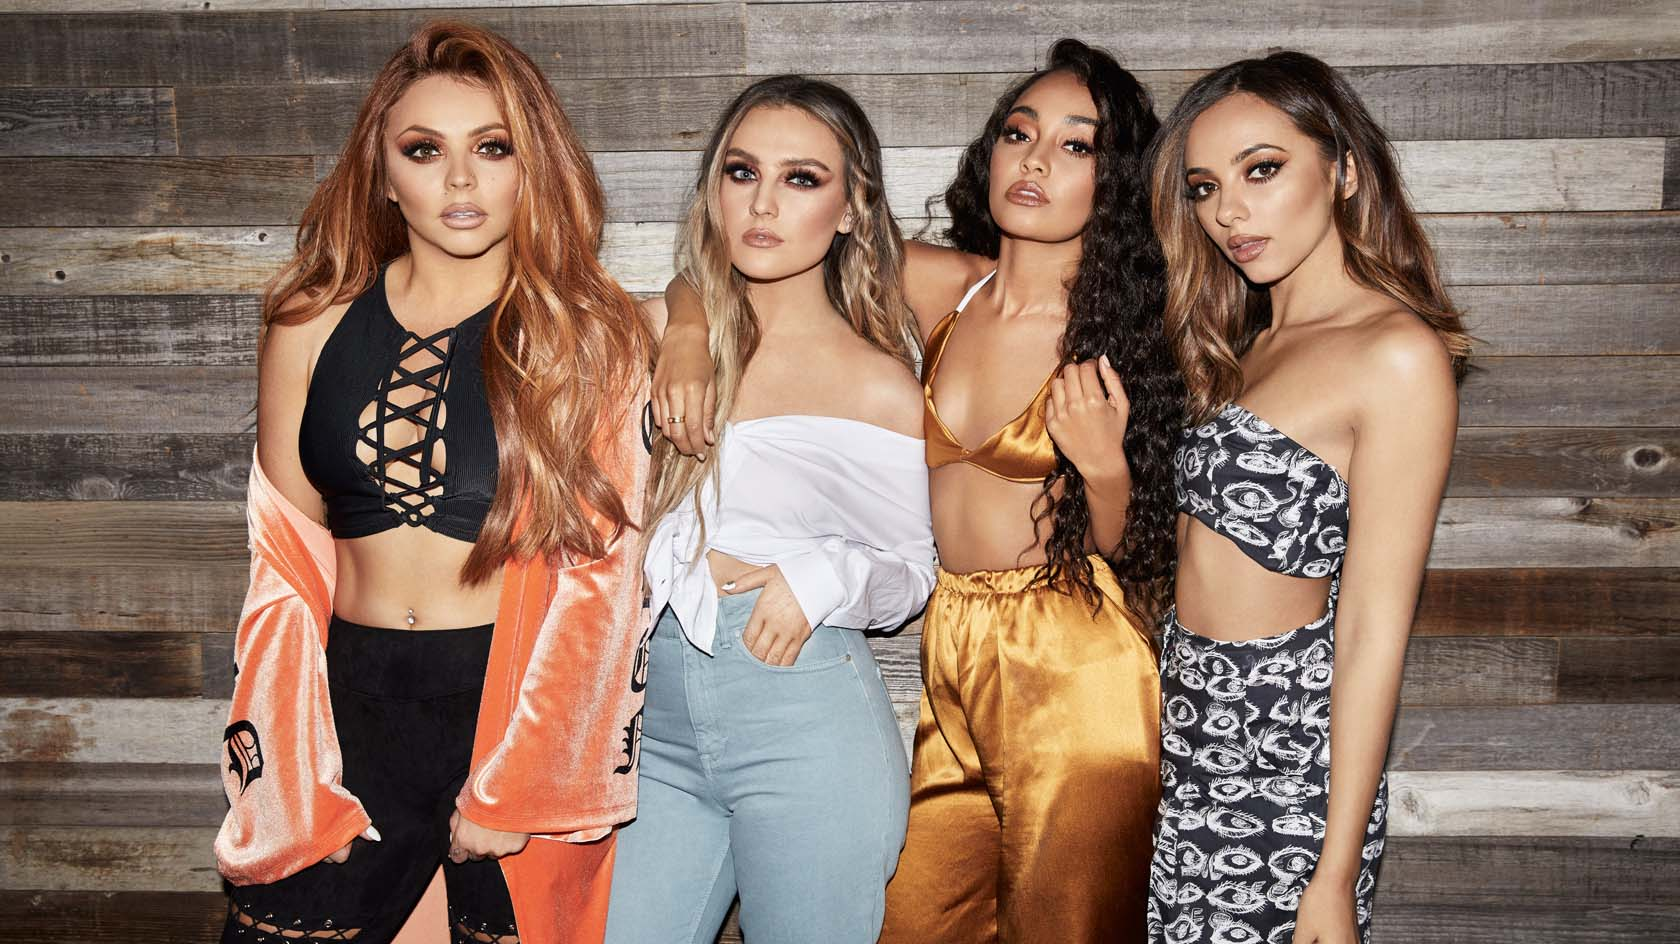 How much will tickets cost for the Lincoln Little Mix show?